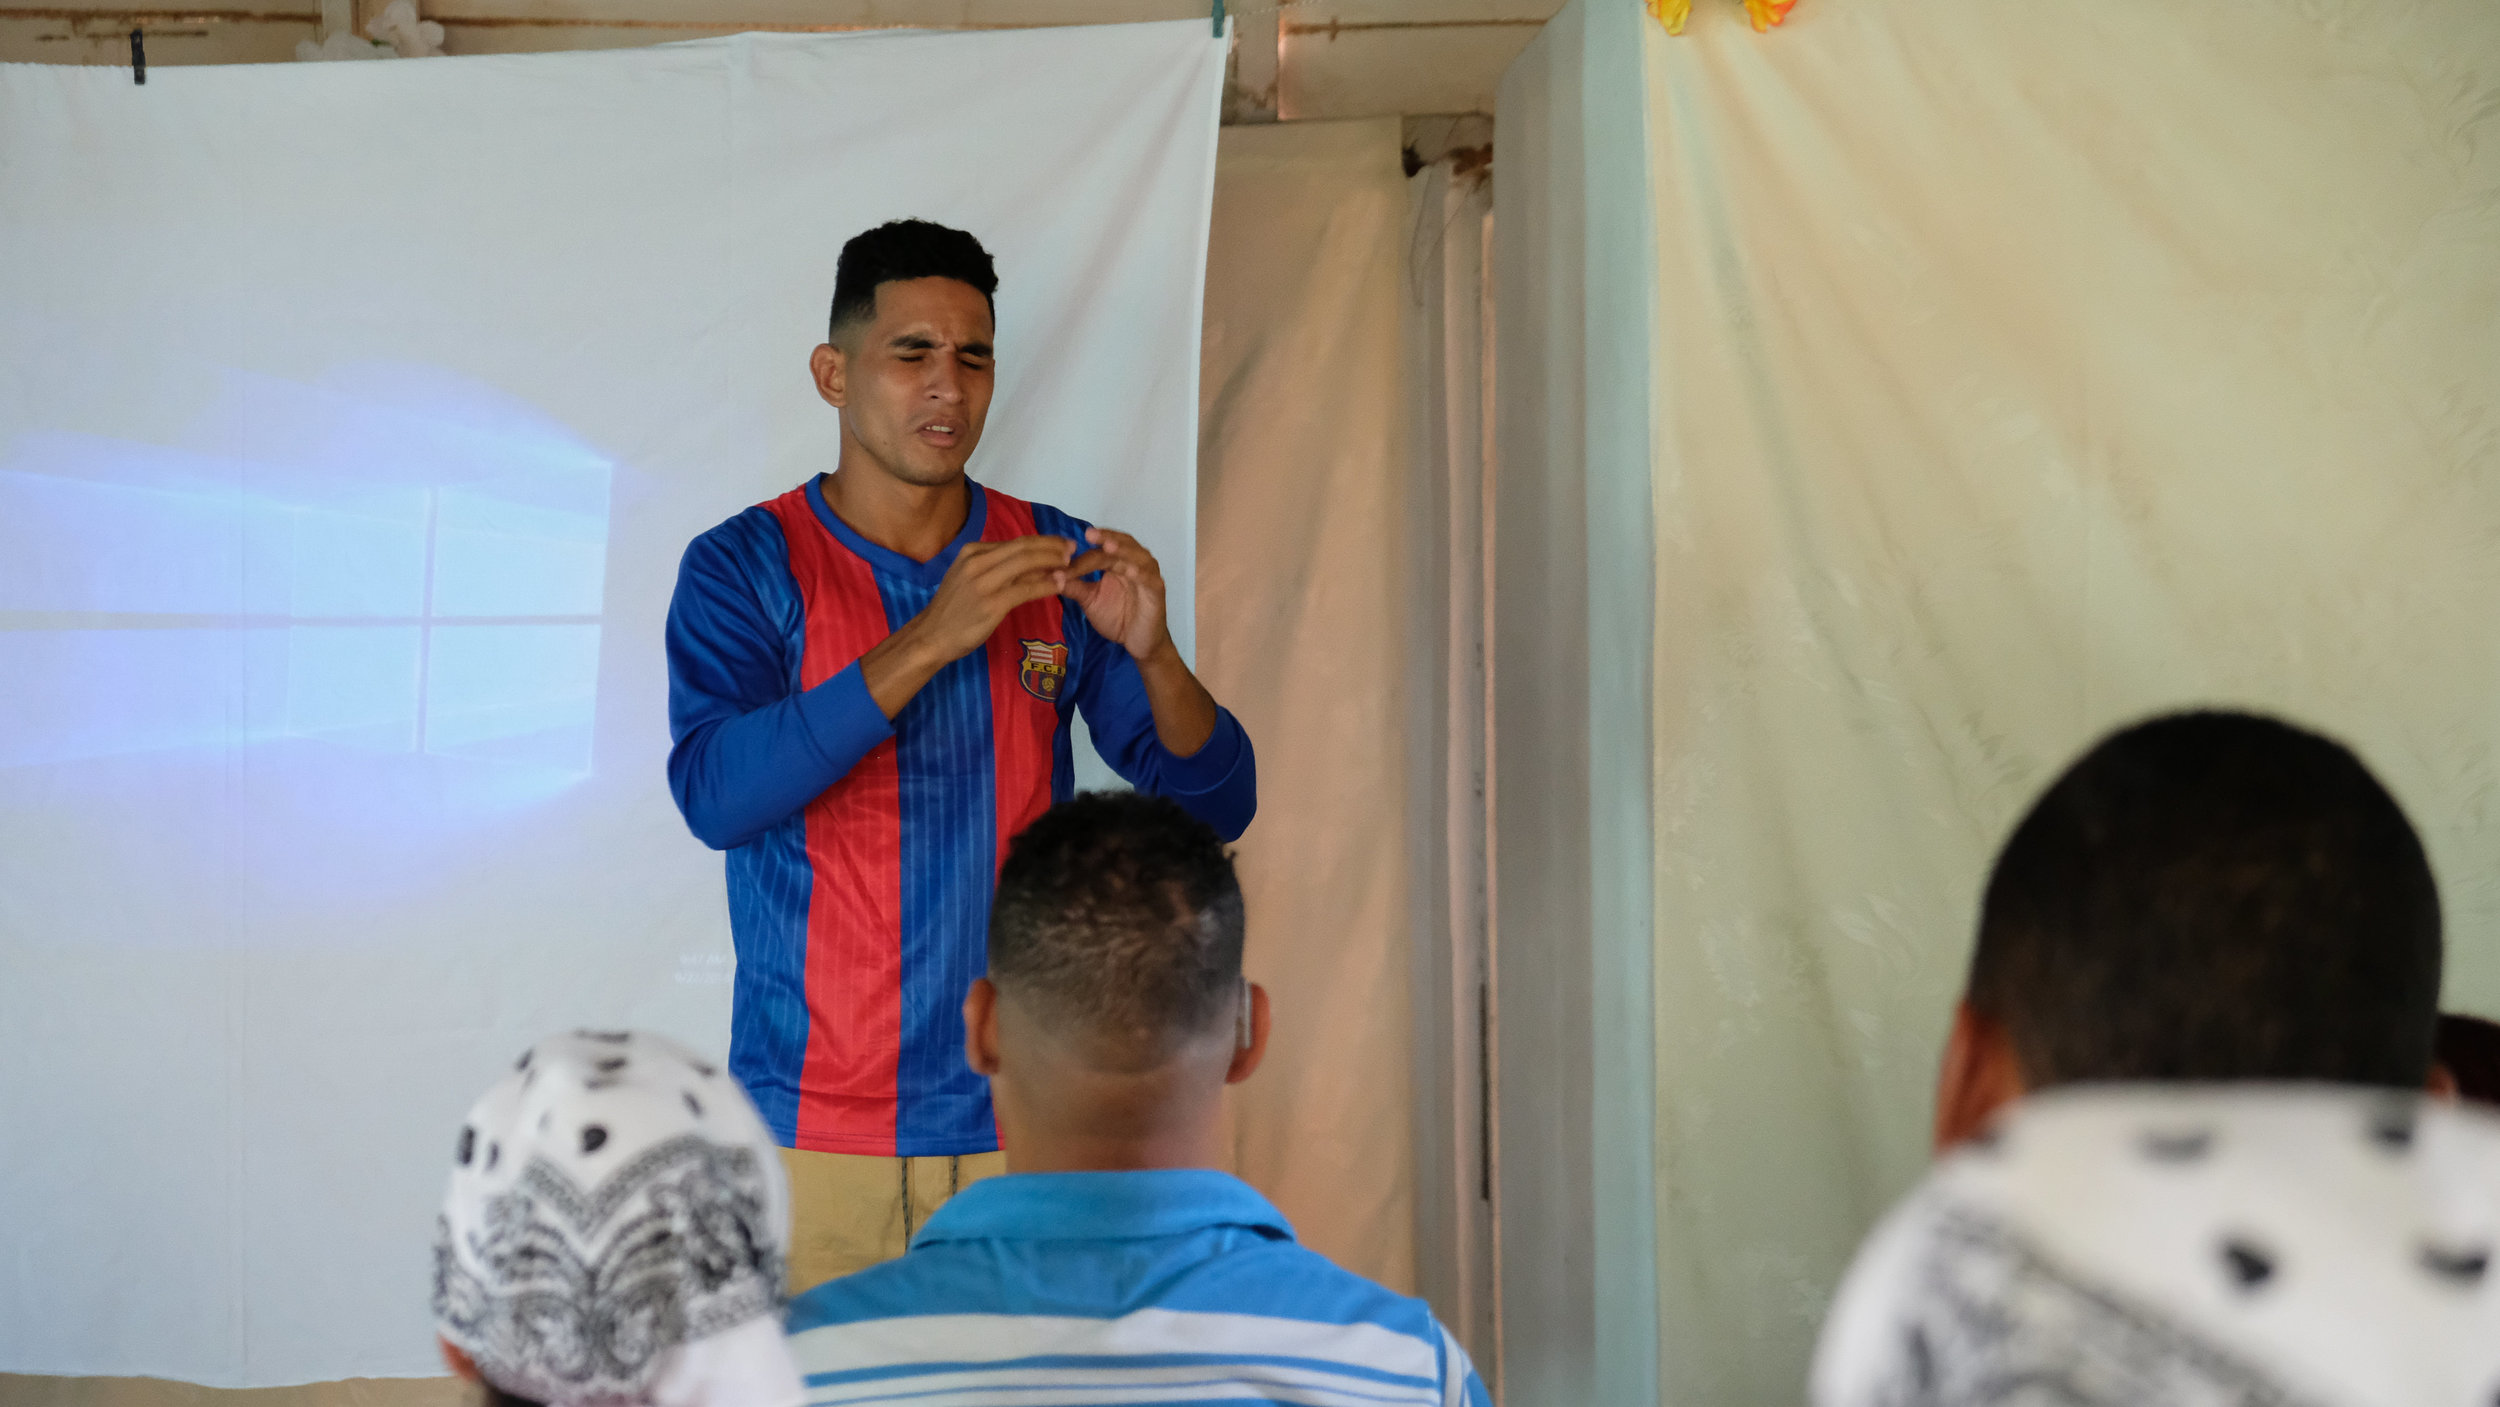 Yondris giving the closing prayer during the last devotional of the retreat